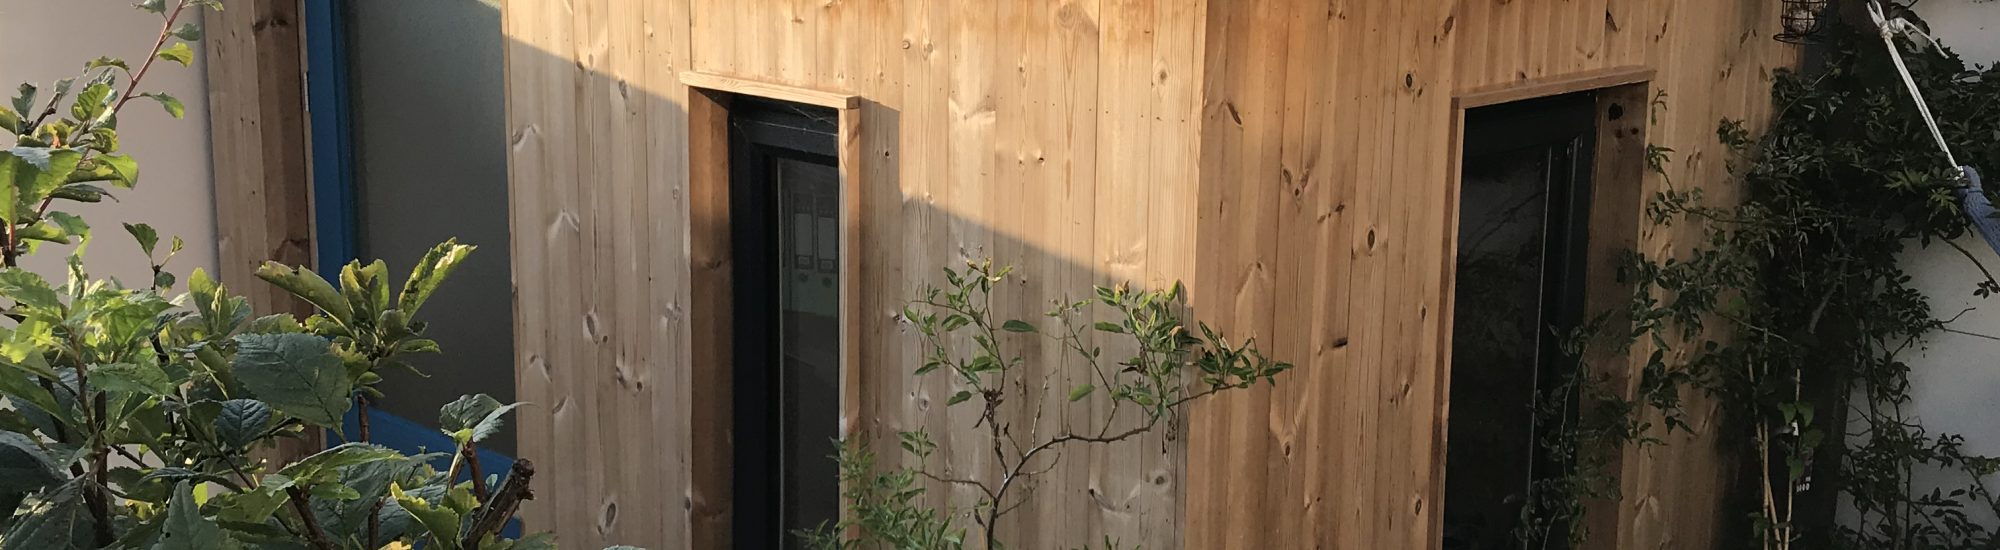 Newquay Garden Office 2000x550 - Offices